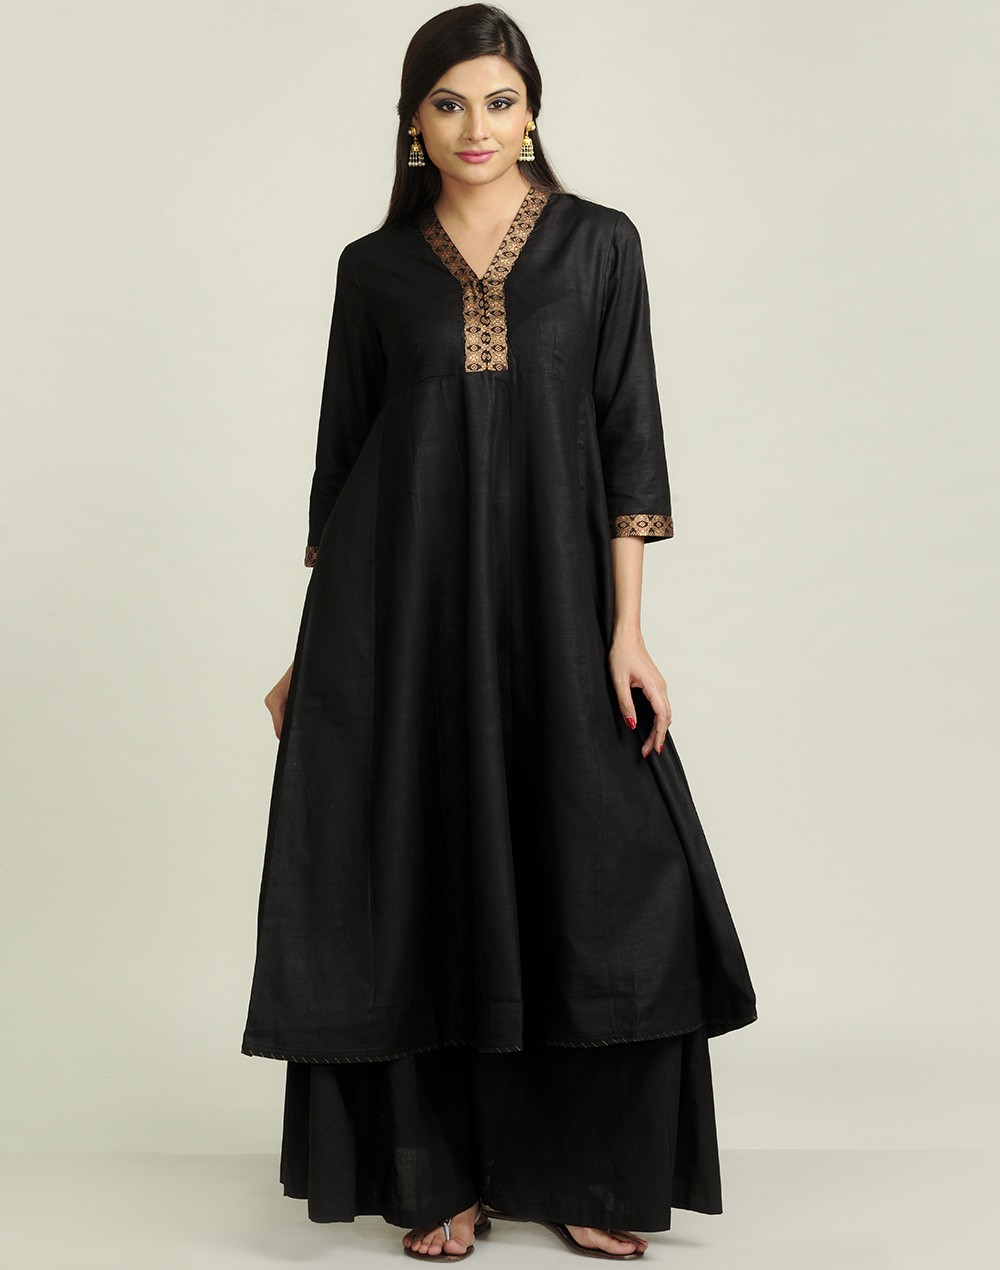 Latest Women Best Kurti Designs Collection For Winter by Fabindia 2015-2016 (31)